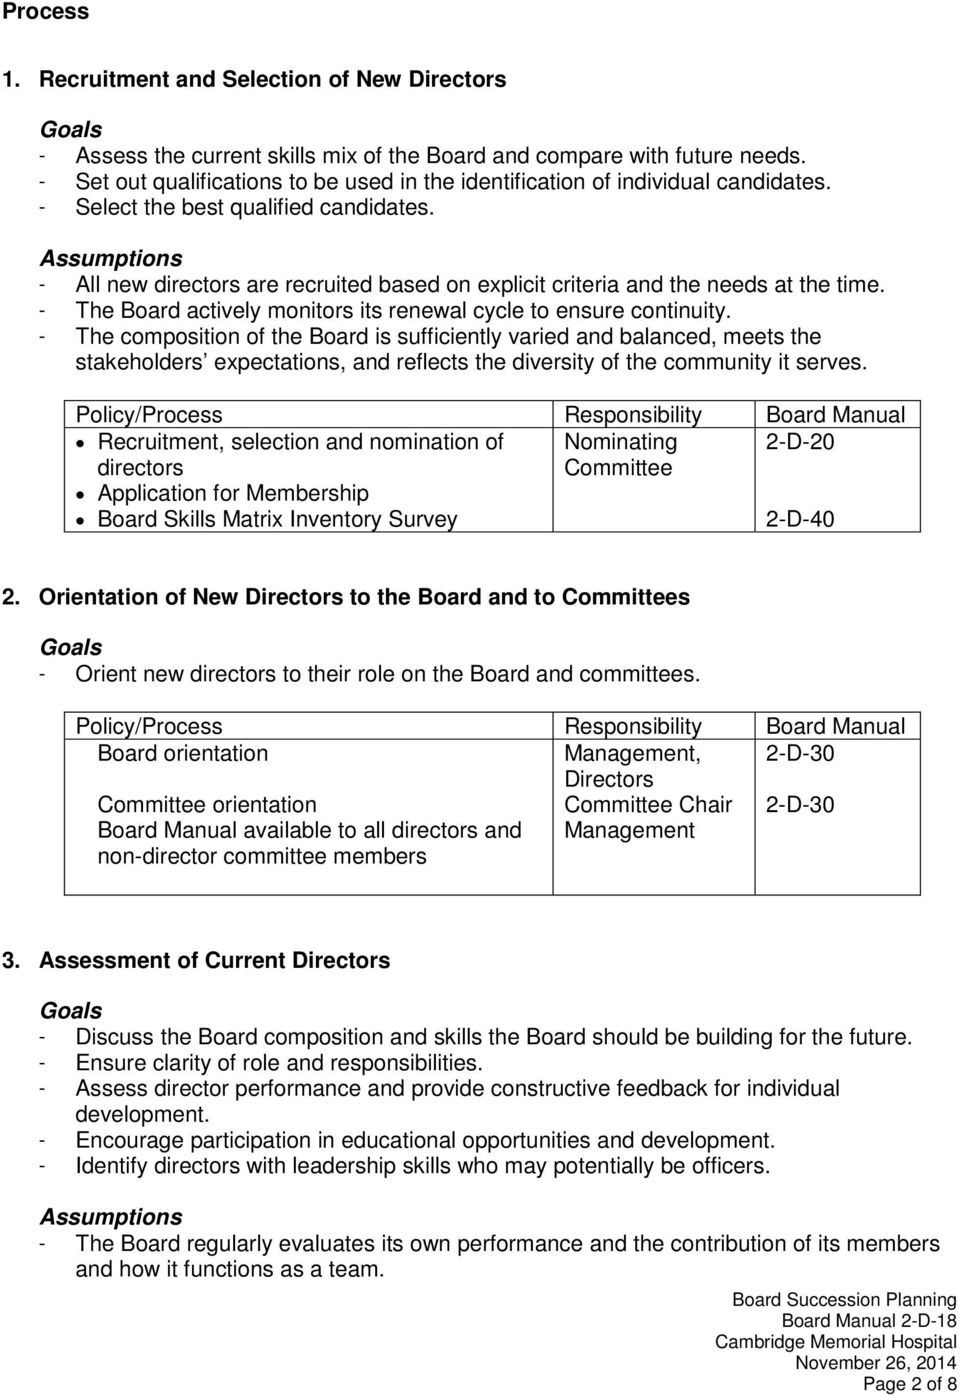 - All new directors are recruited based on explicit criteria and the needs at the time. - The Board actively monitors its renewal cycle to ensure continuity.